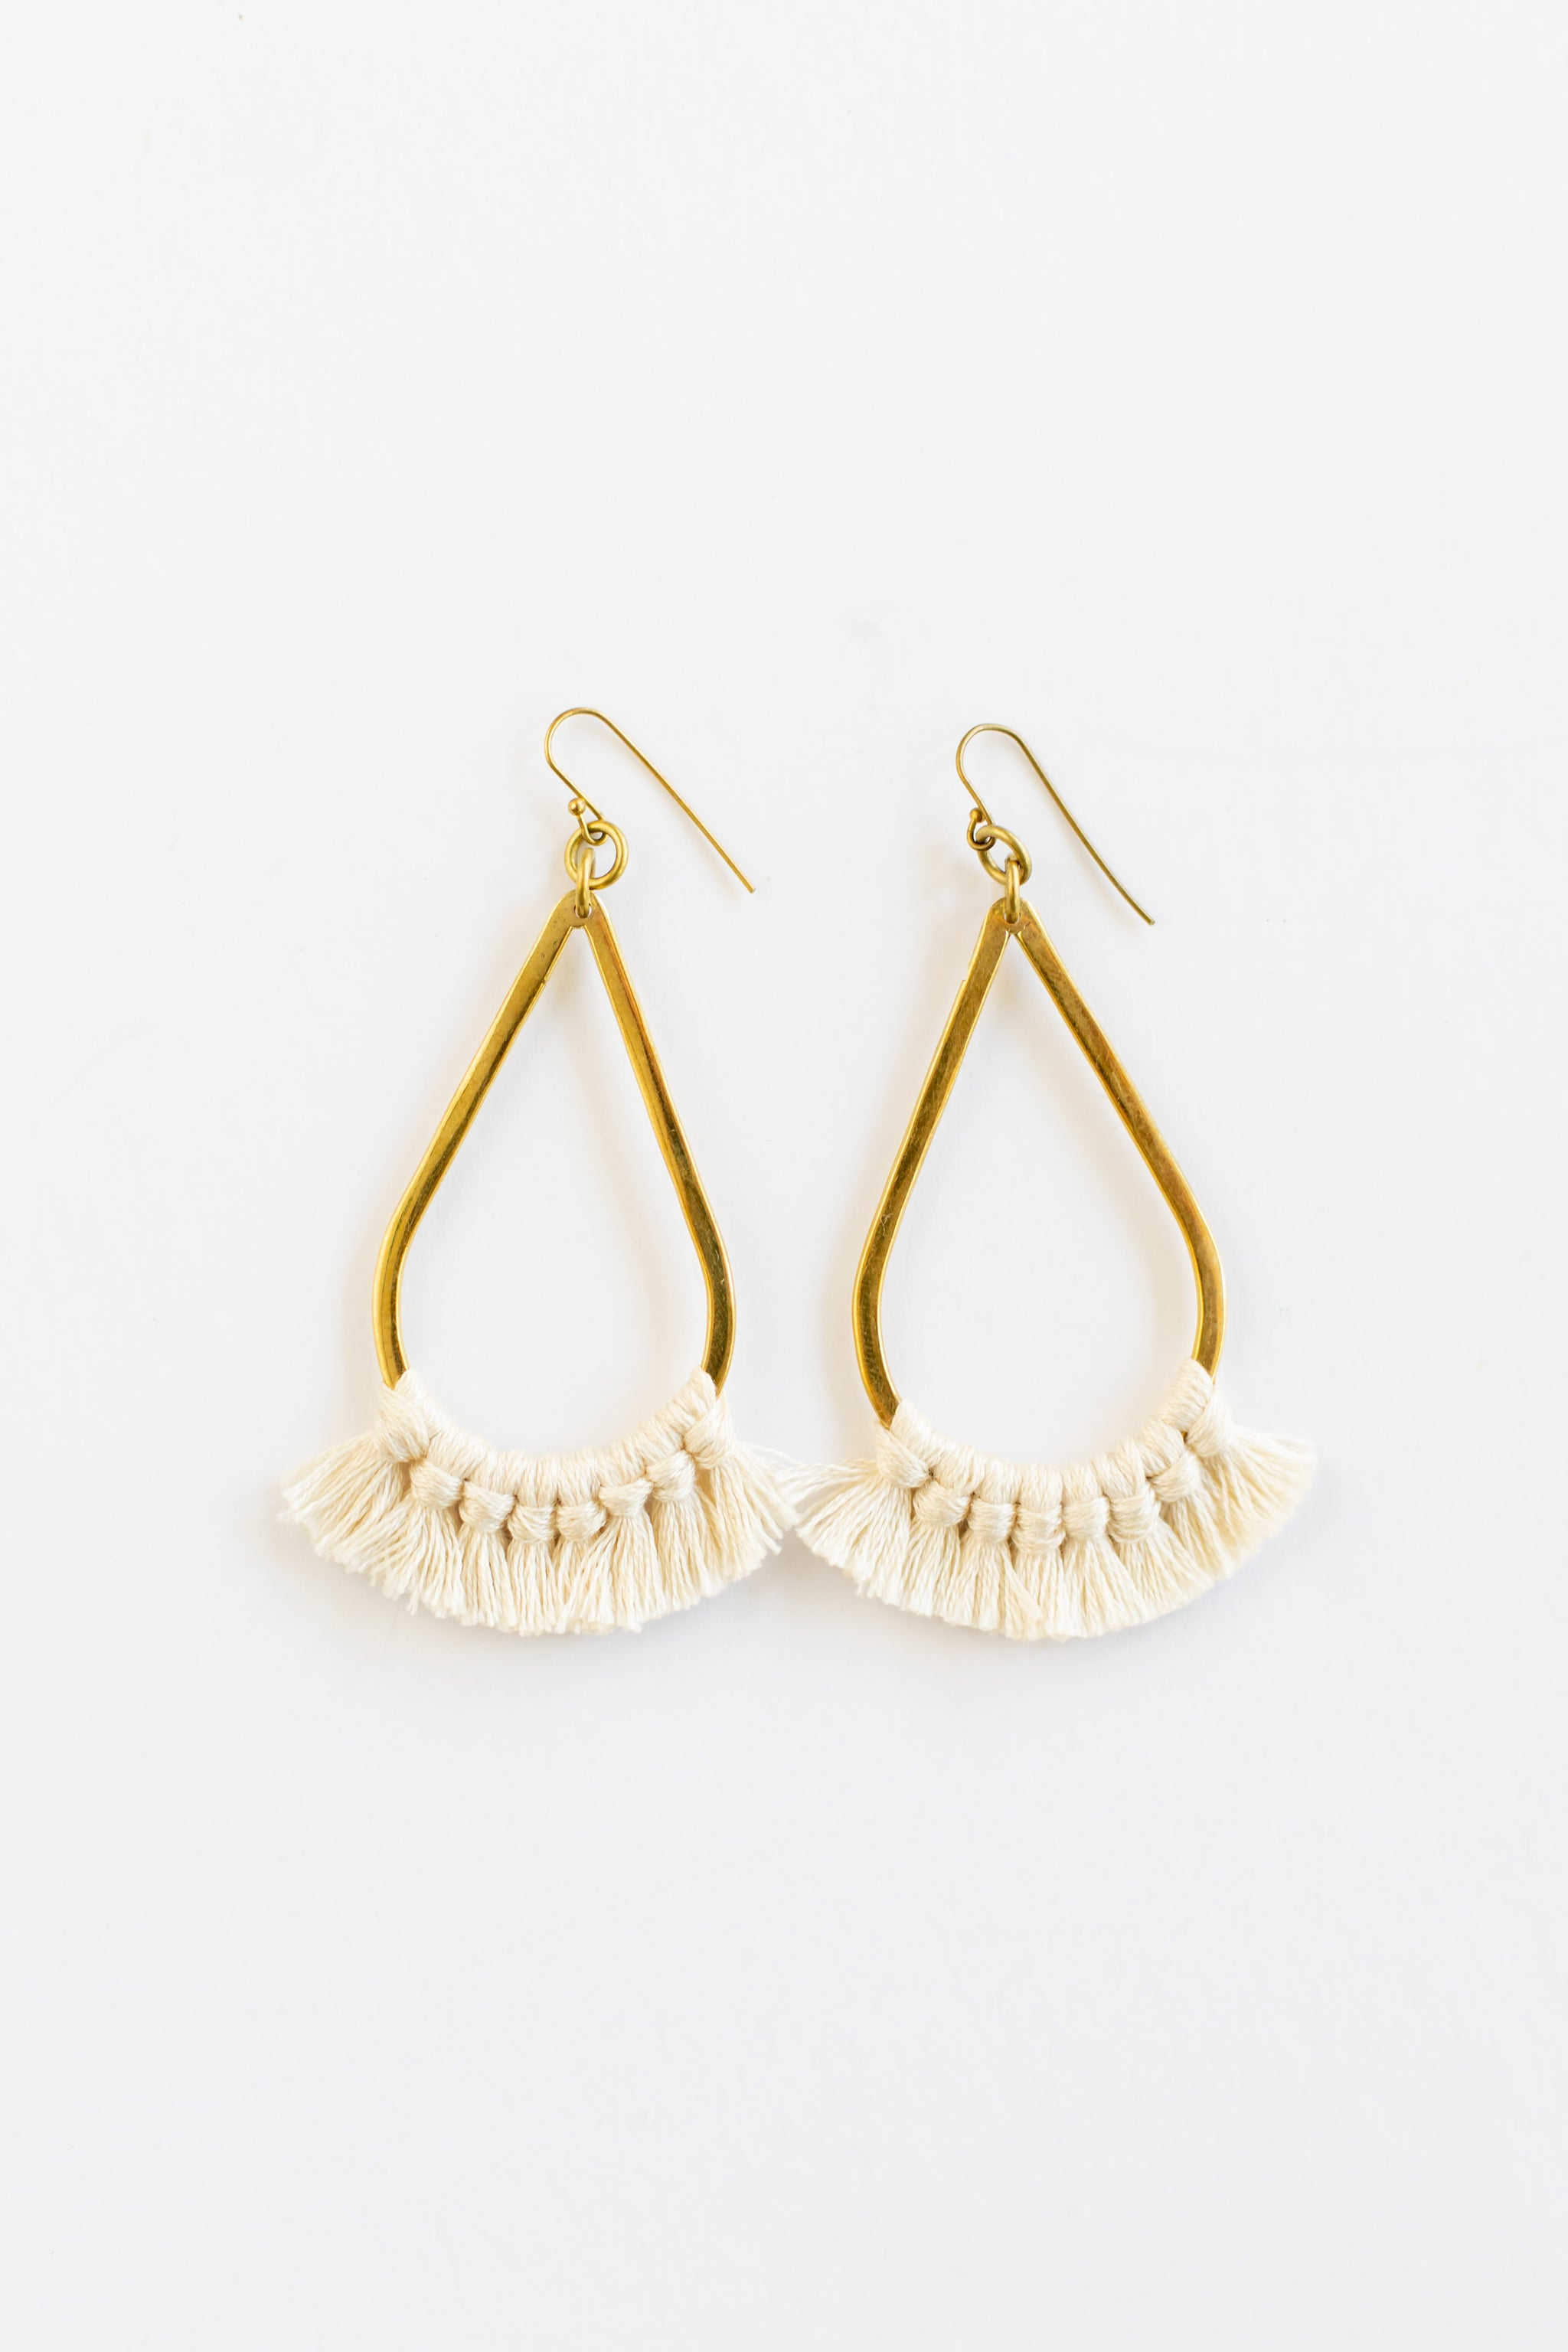 Teardrop Fringe Earrings | Cream Earrings - Fair Trade - Mercy House Global